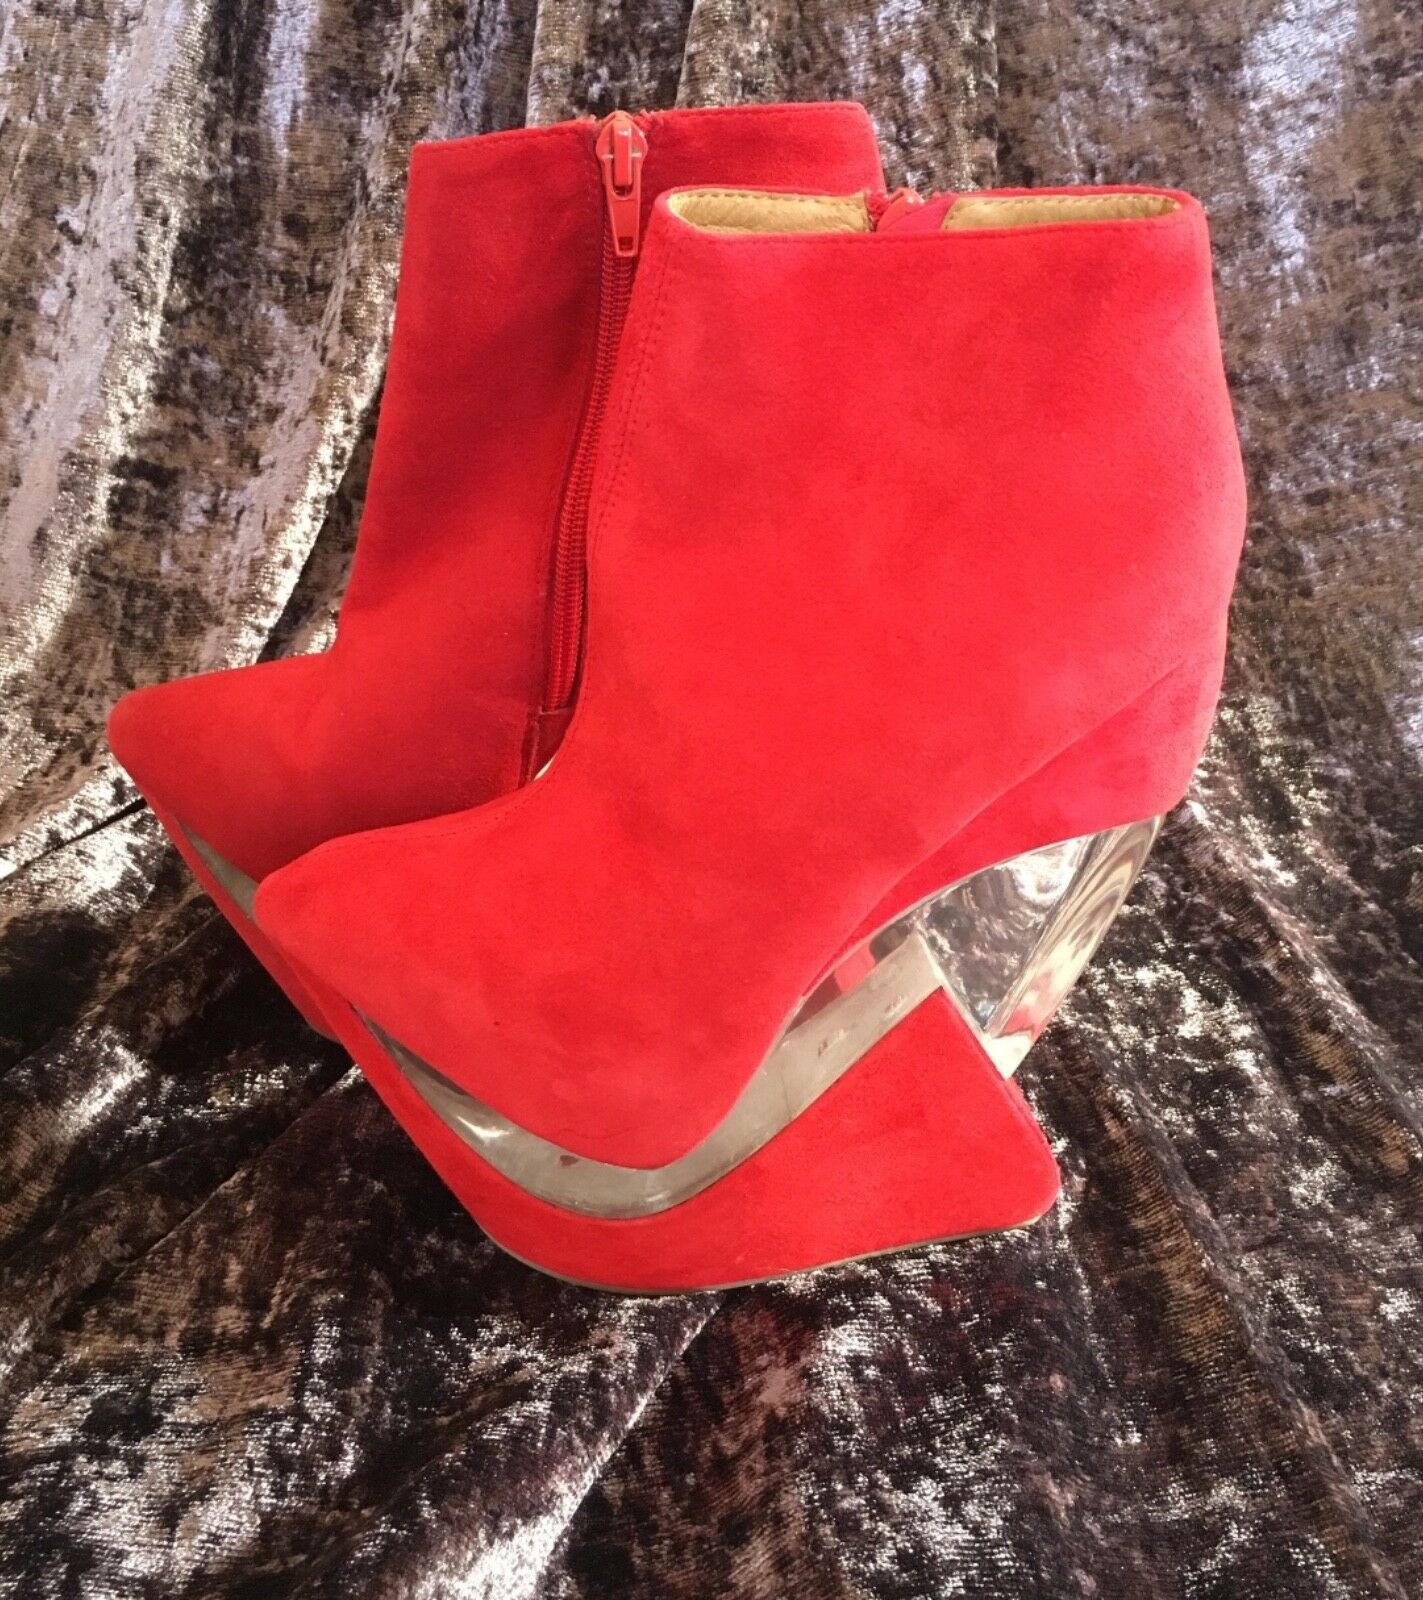 Jeffrey campbell red suede zoom platform wedge boots size 3 new in box